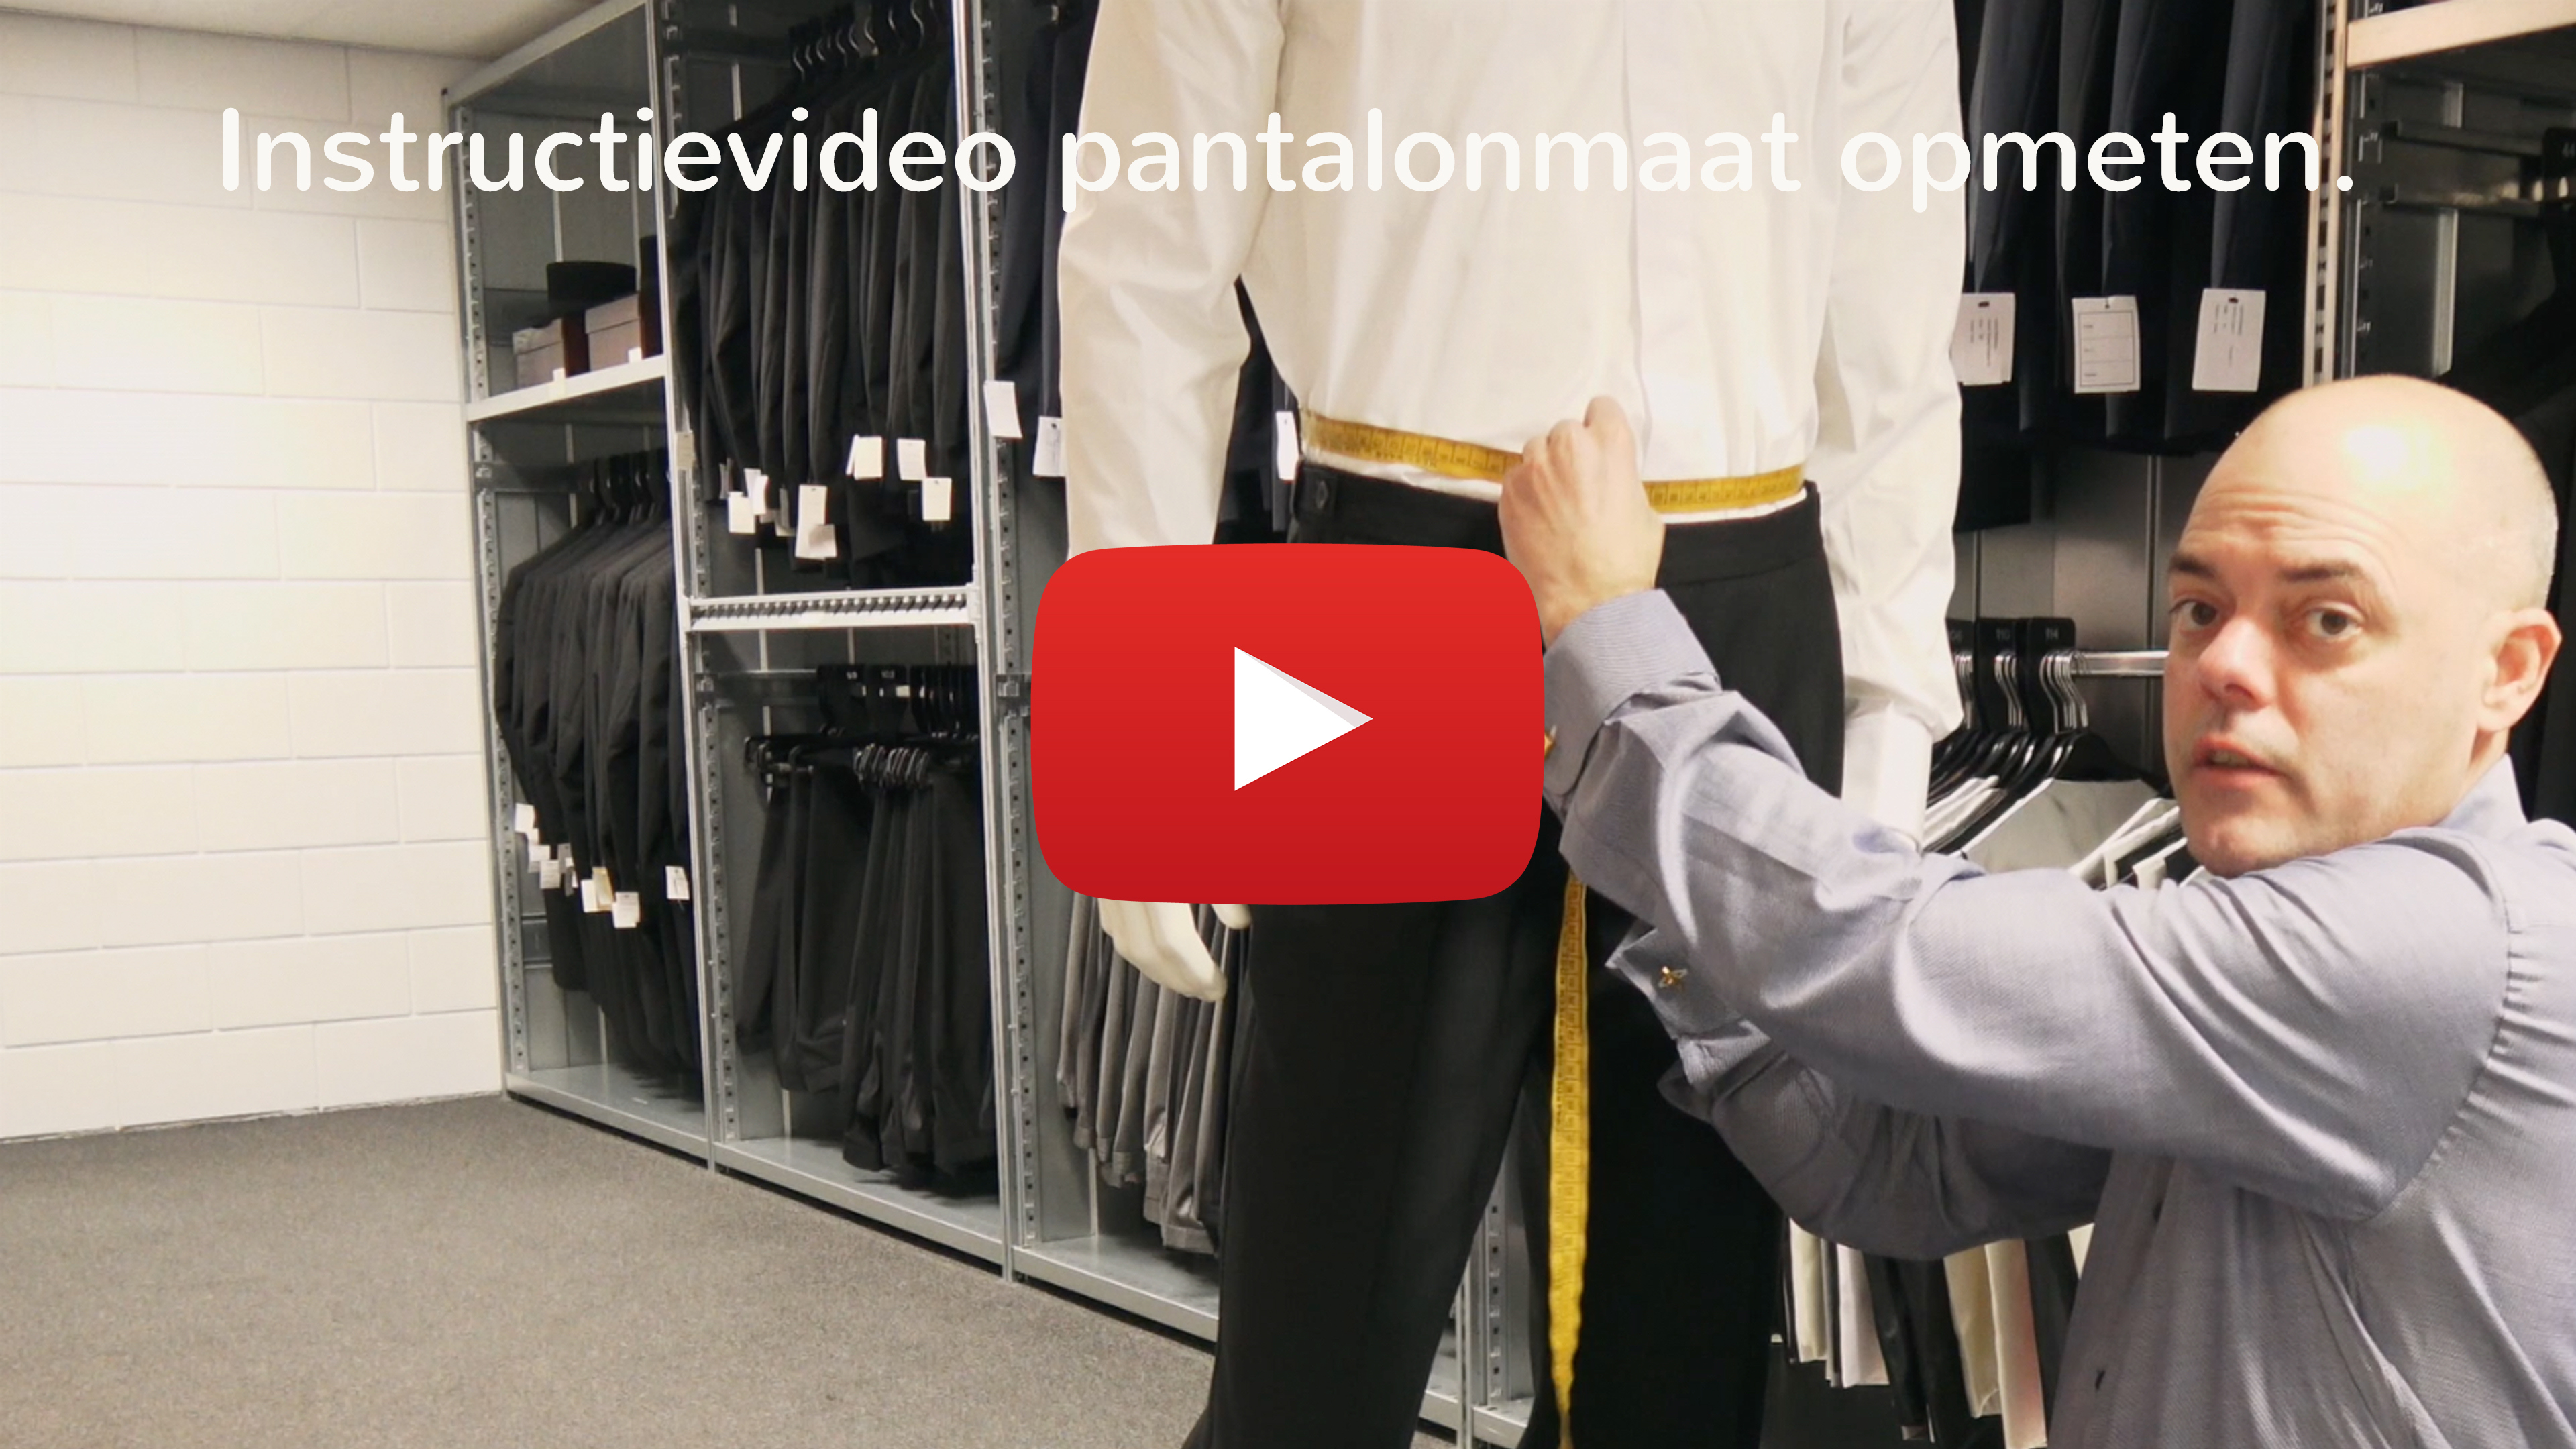 Instructievideo pantalonmaat opmeten